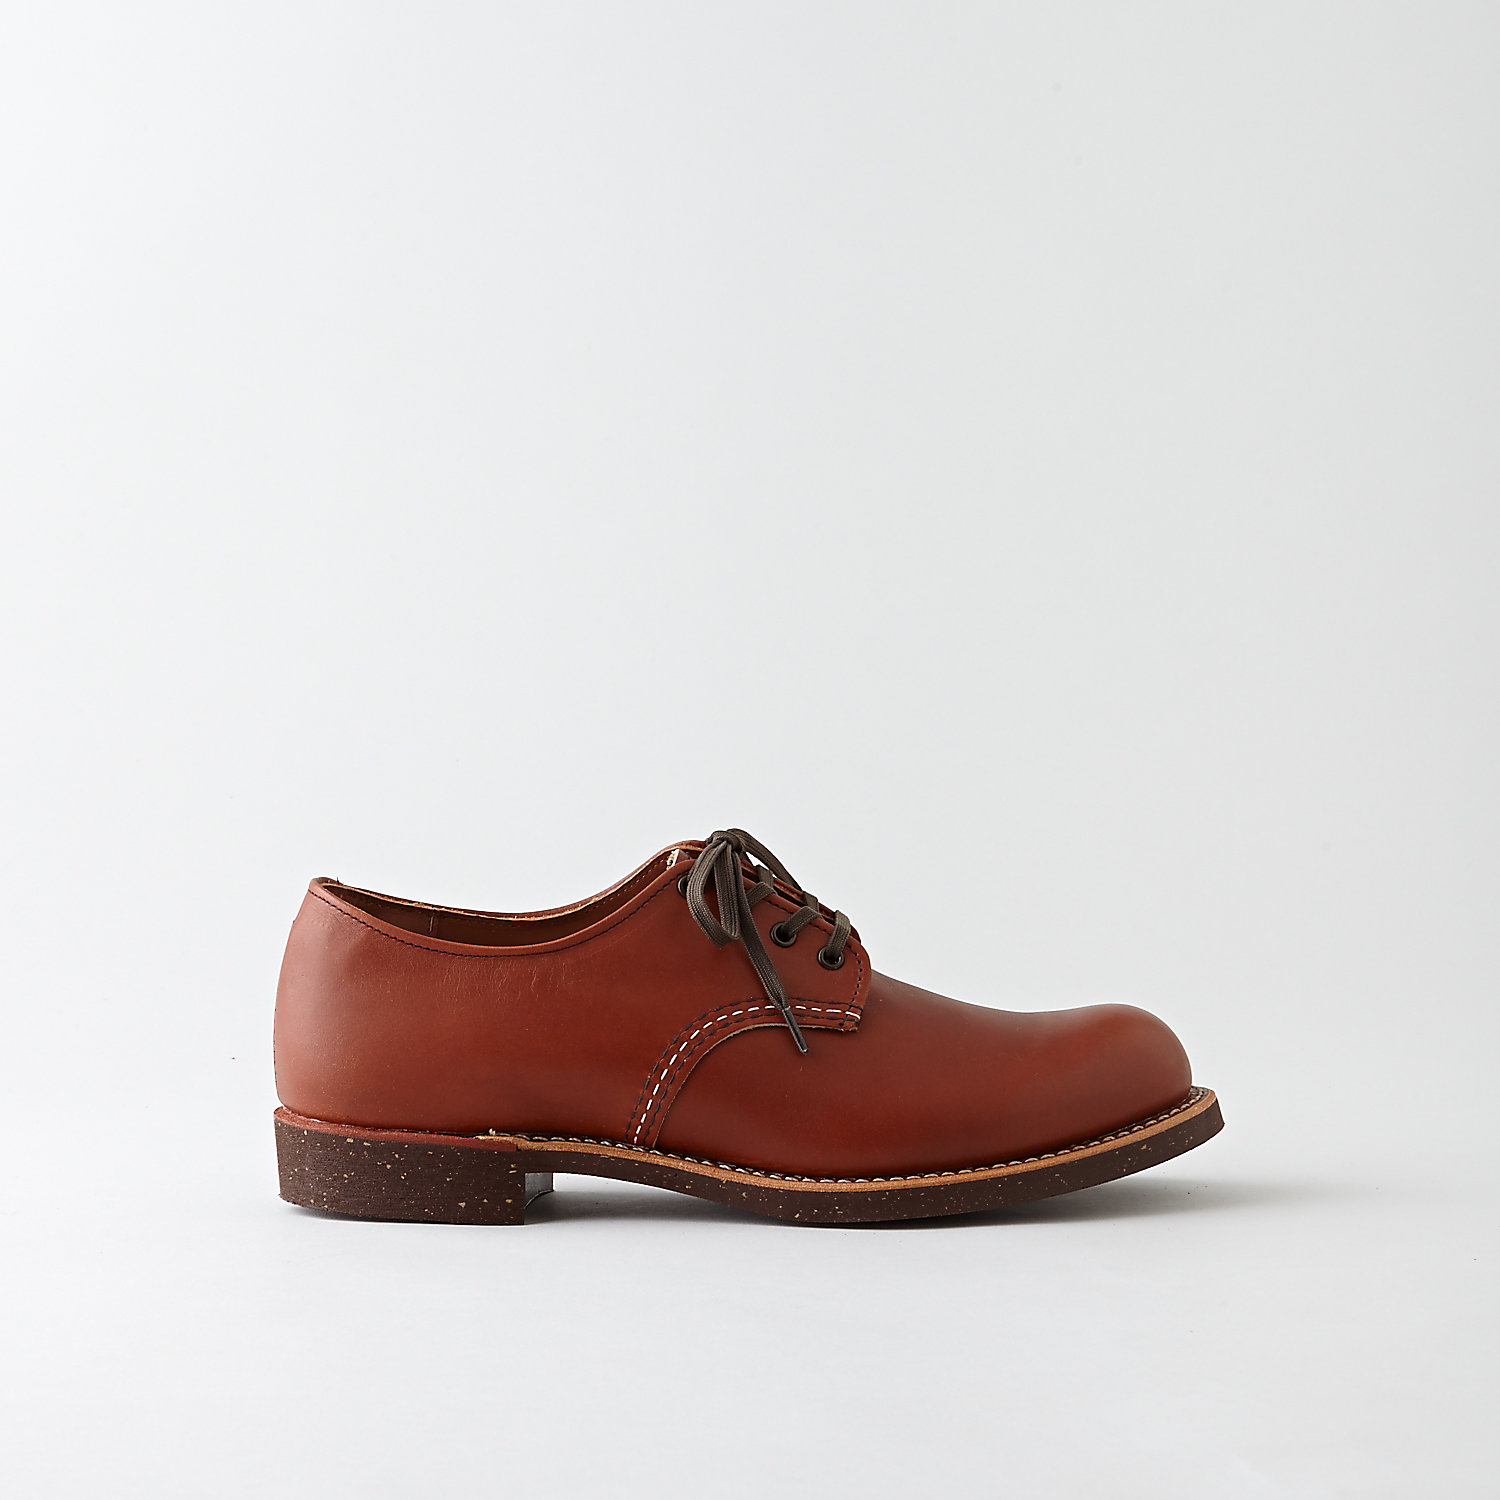 FOREMAN OXFORDS